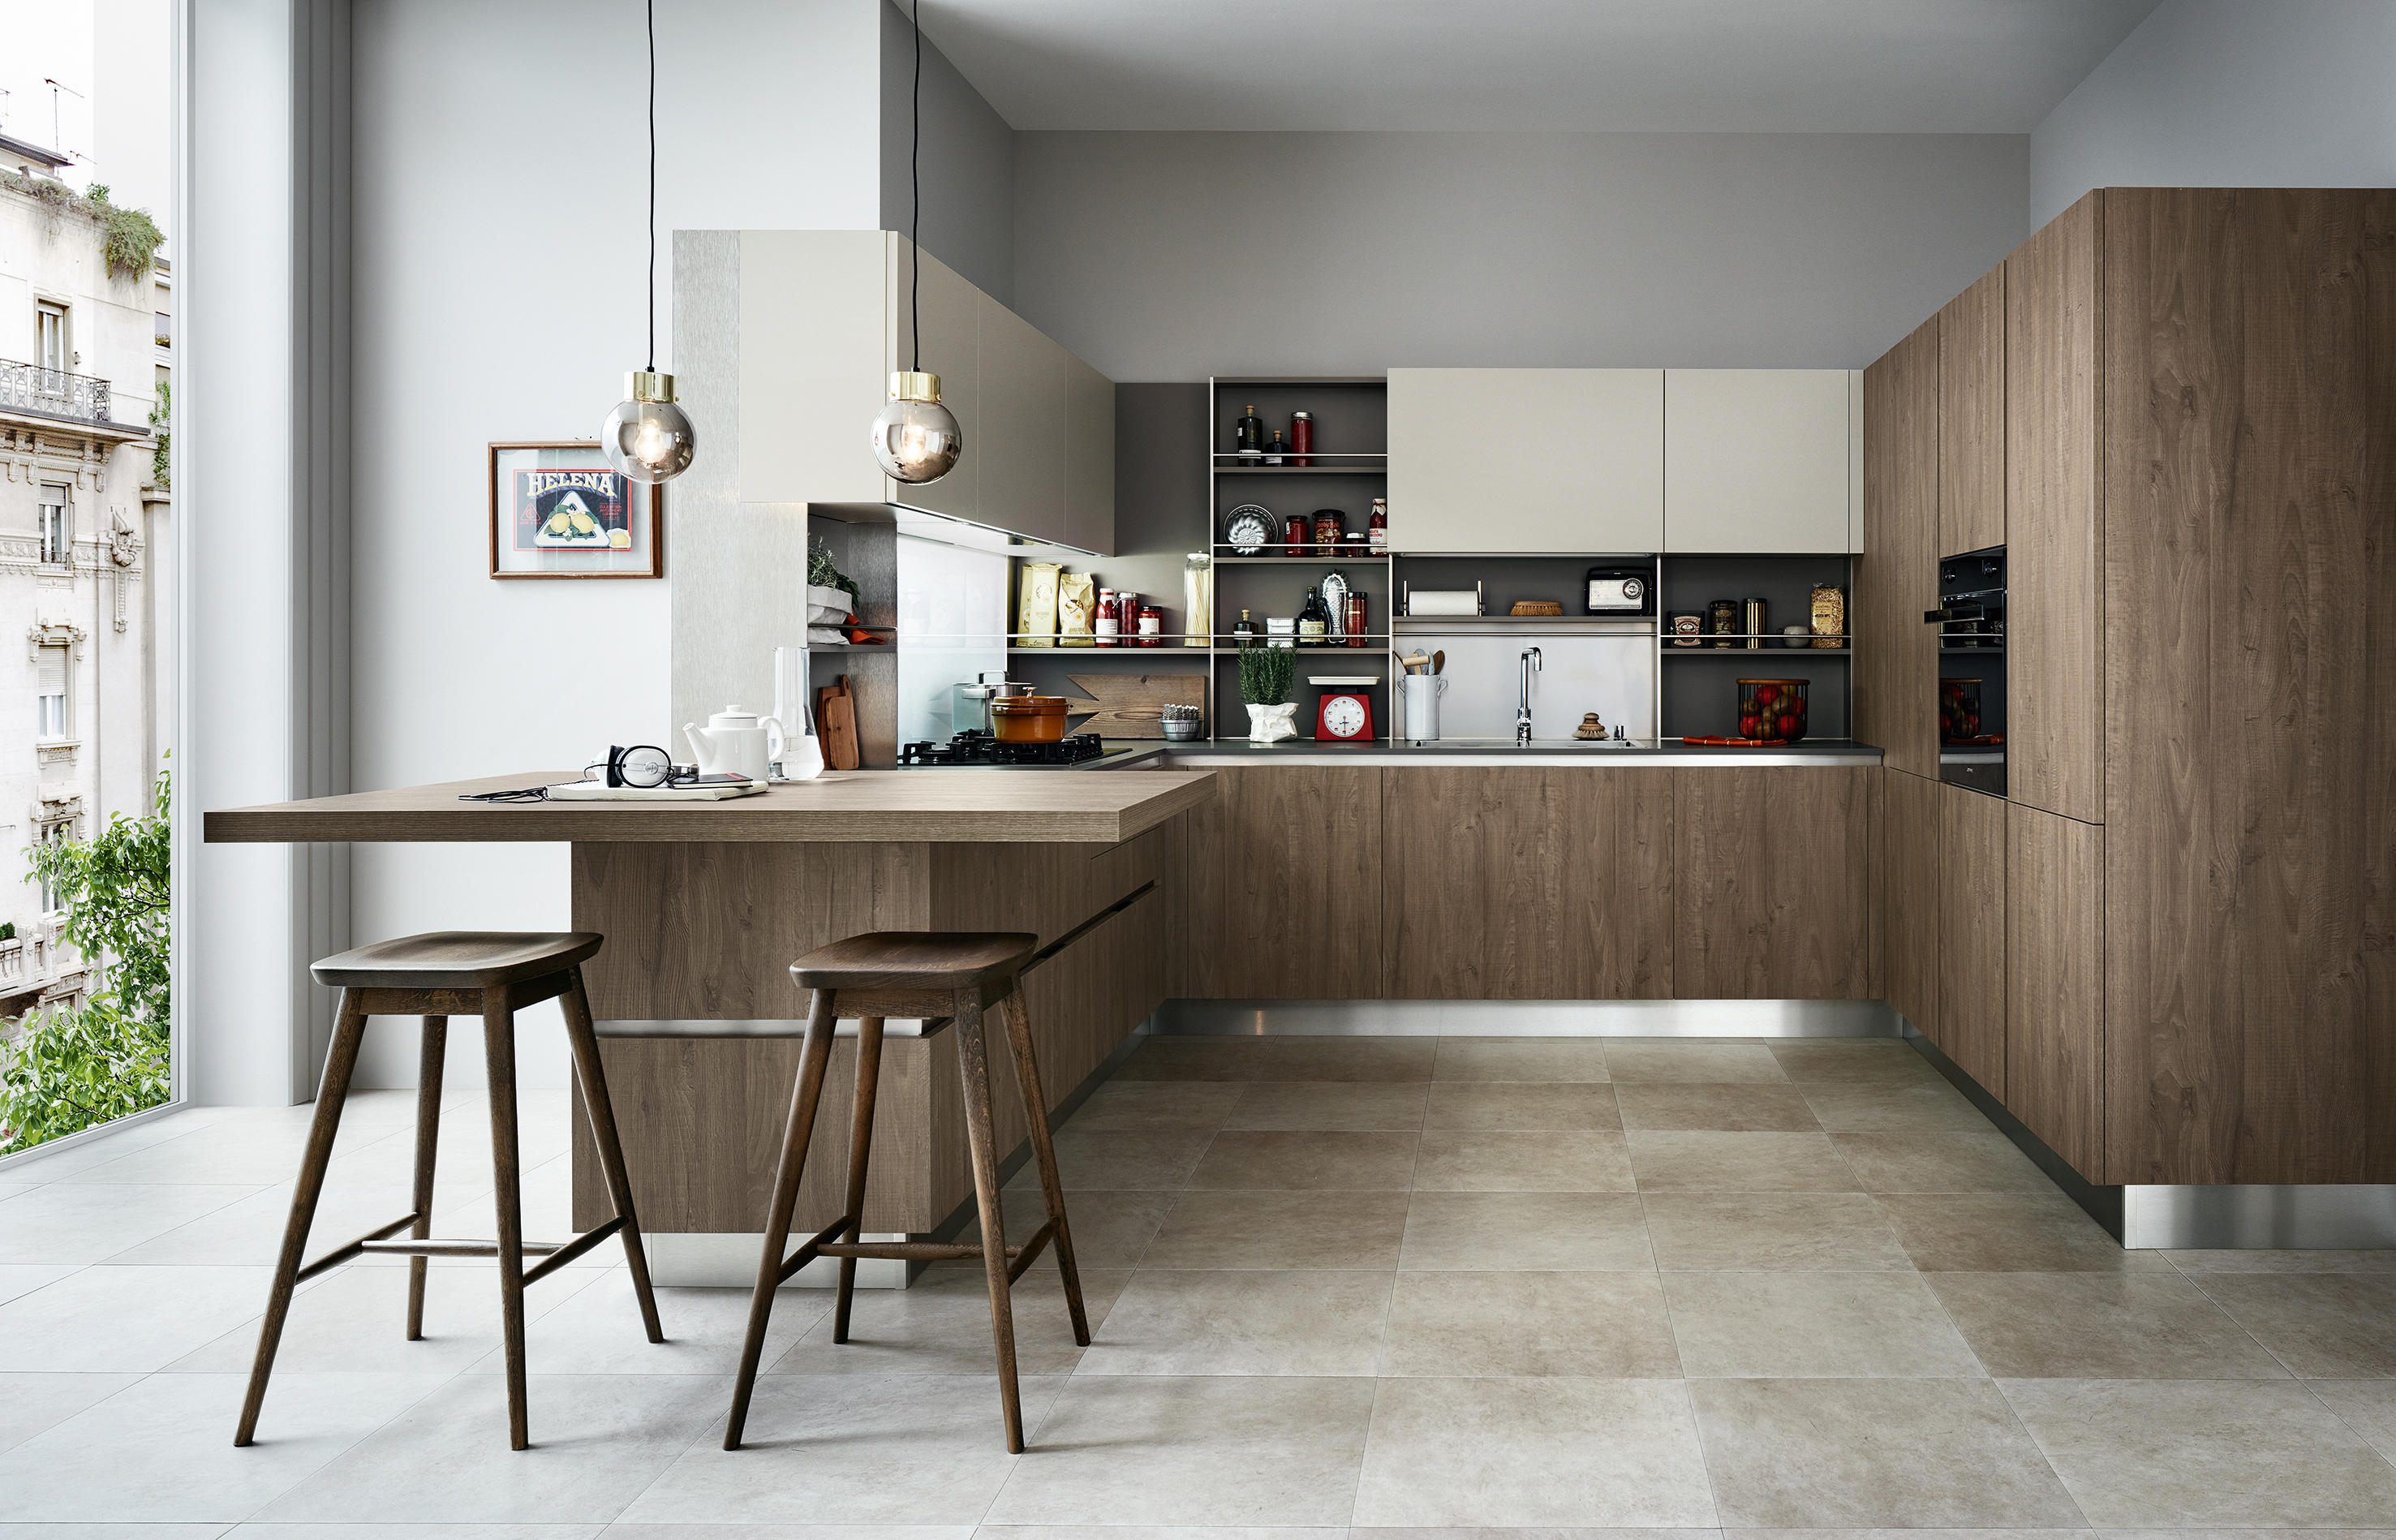 ETHICAGO  Fitted kitchens from Veneta Cucine  Architonic